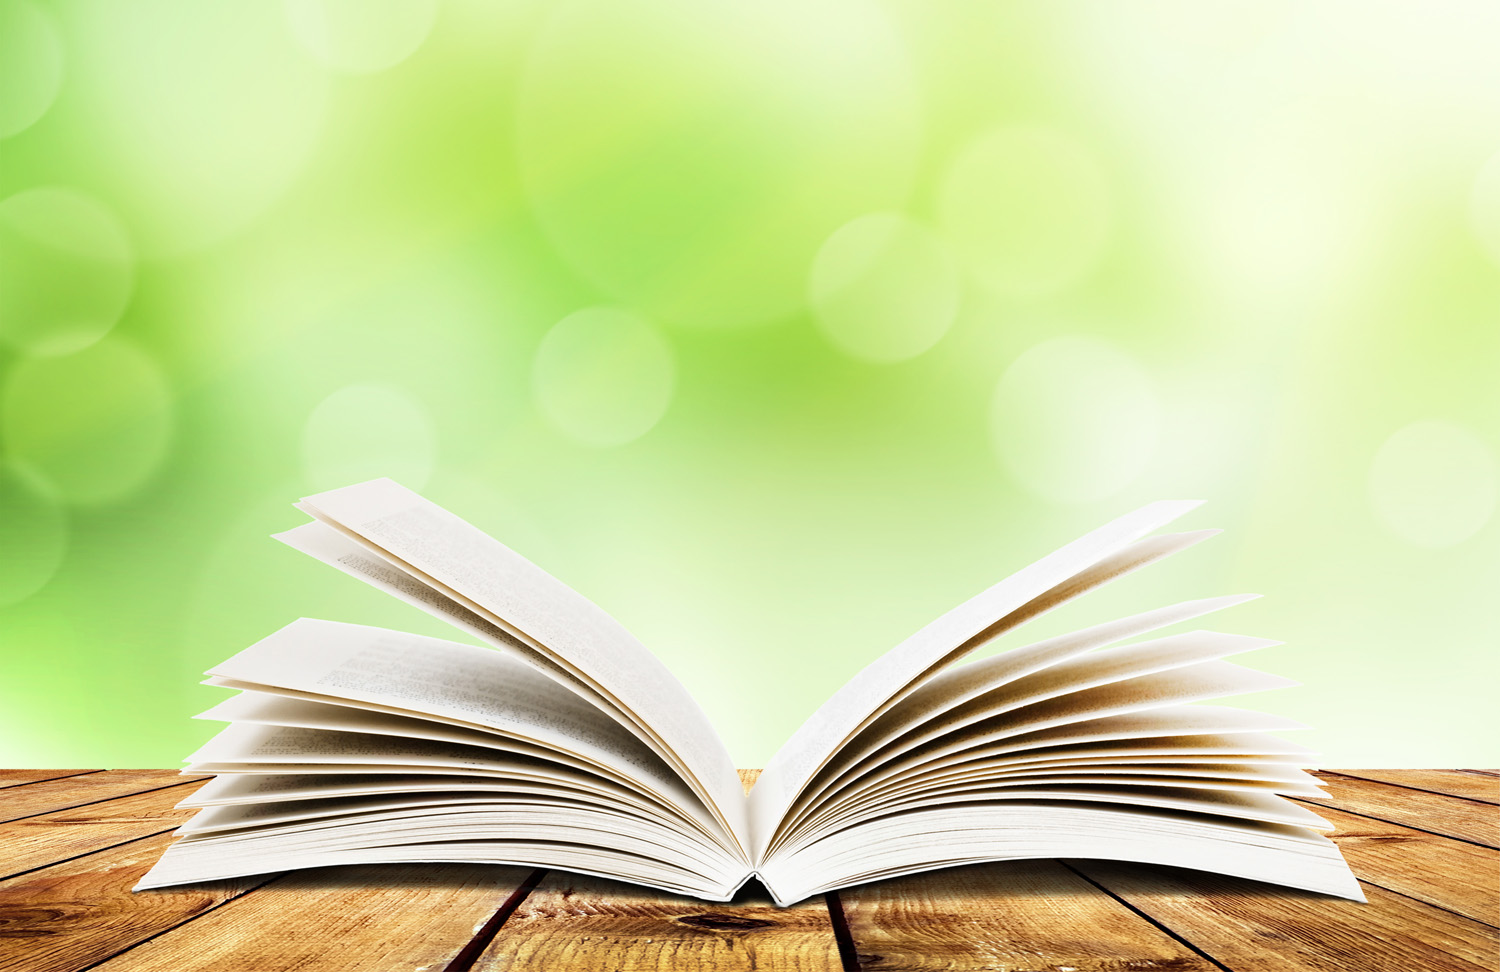 open_book_green_background_11572282912